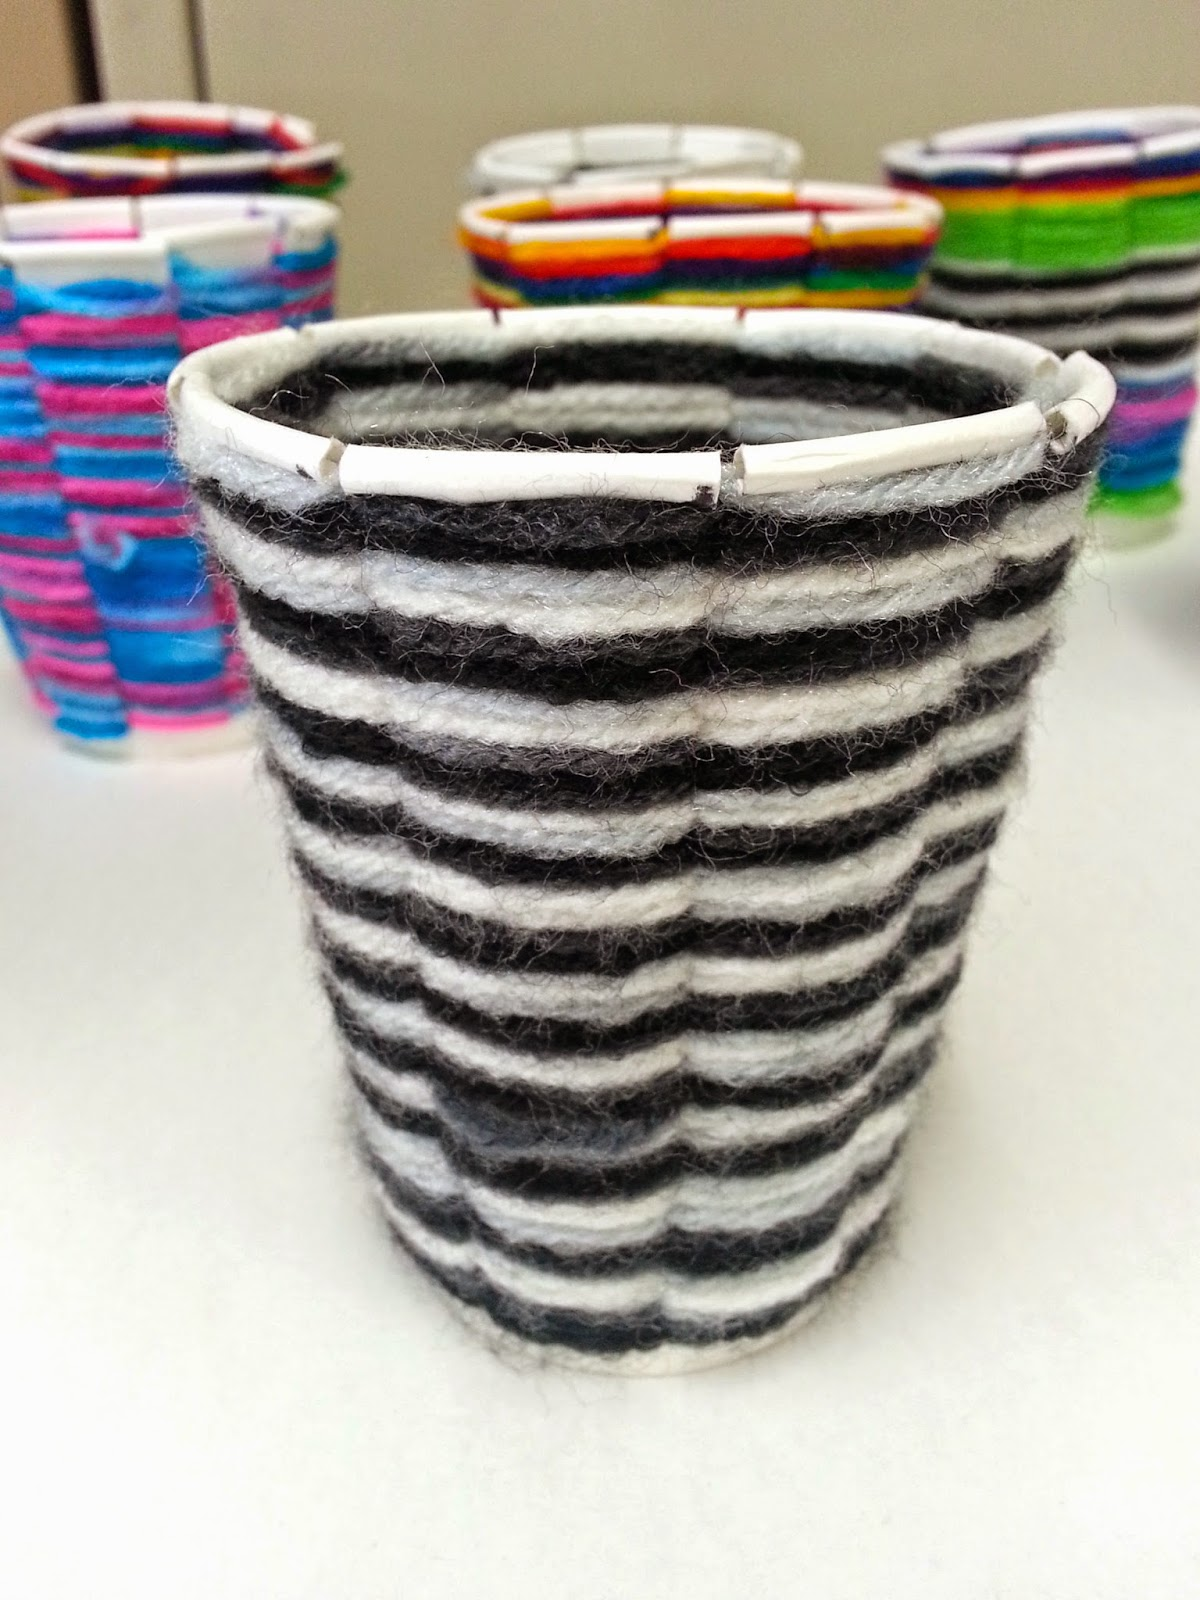 Basket Weaving Using A Paper Cup : Cup weaving th art with mrs nguyen